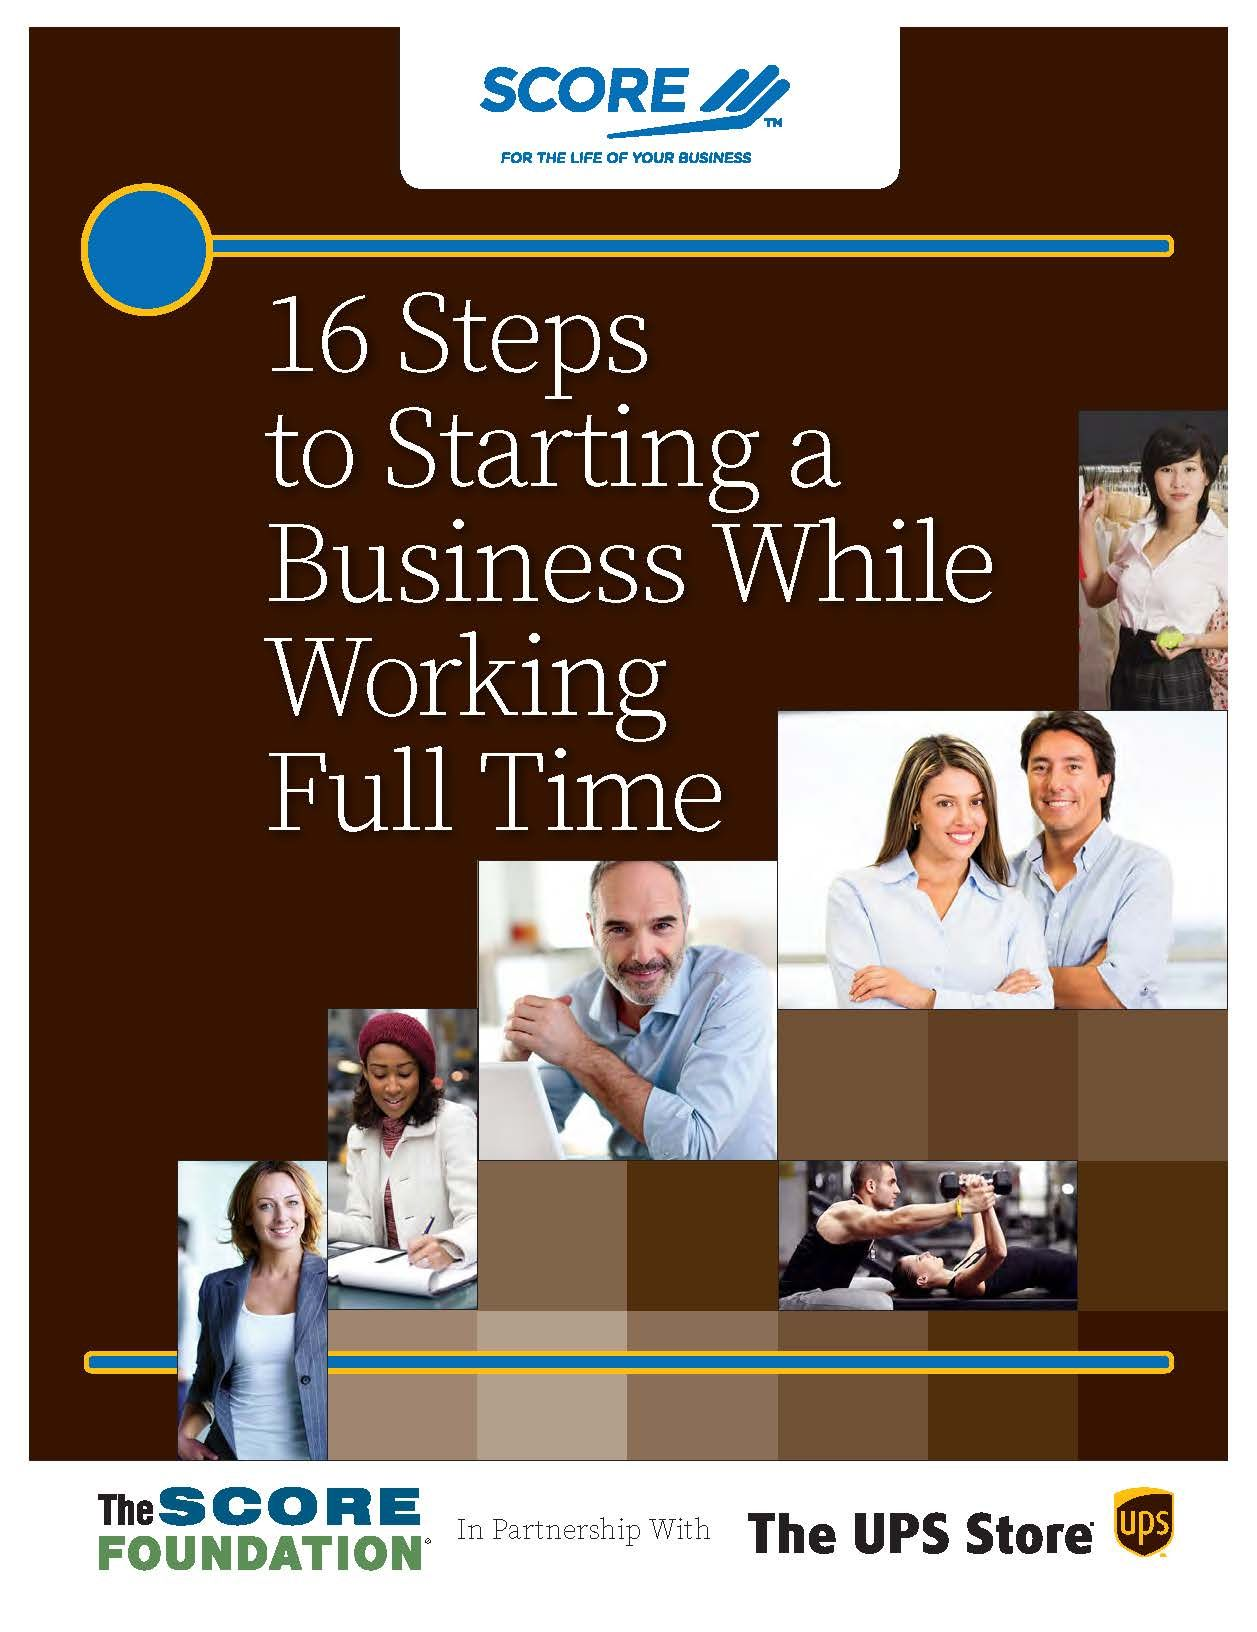 If you want to start a business but arent ready to give